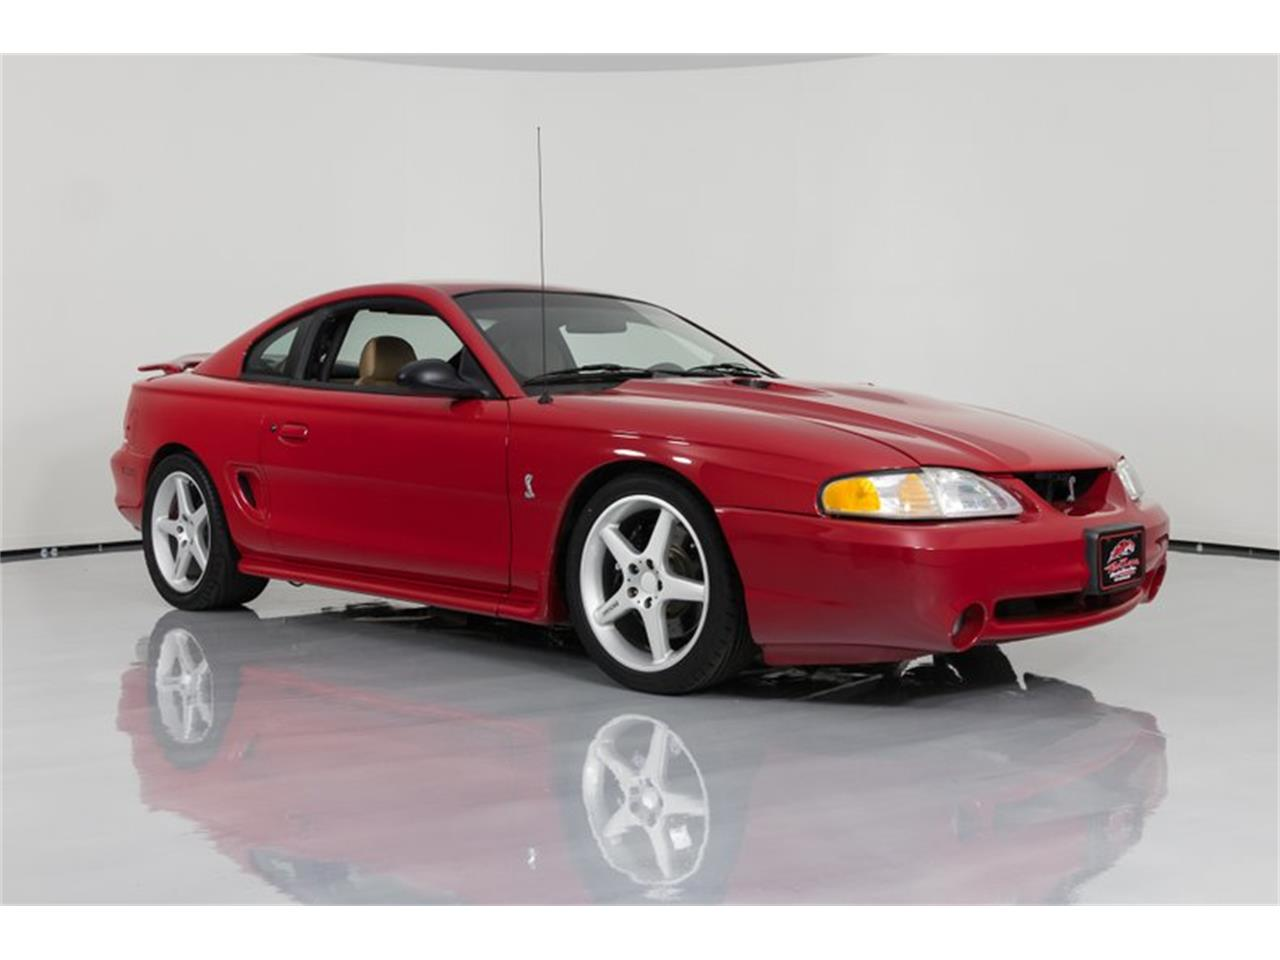 Large Picture of '97 Ford Mustang - $16,995.00 - Q83F